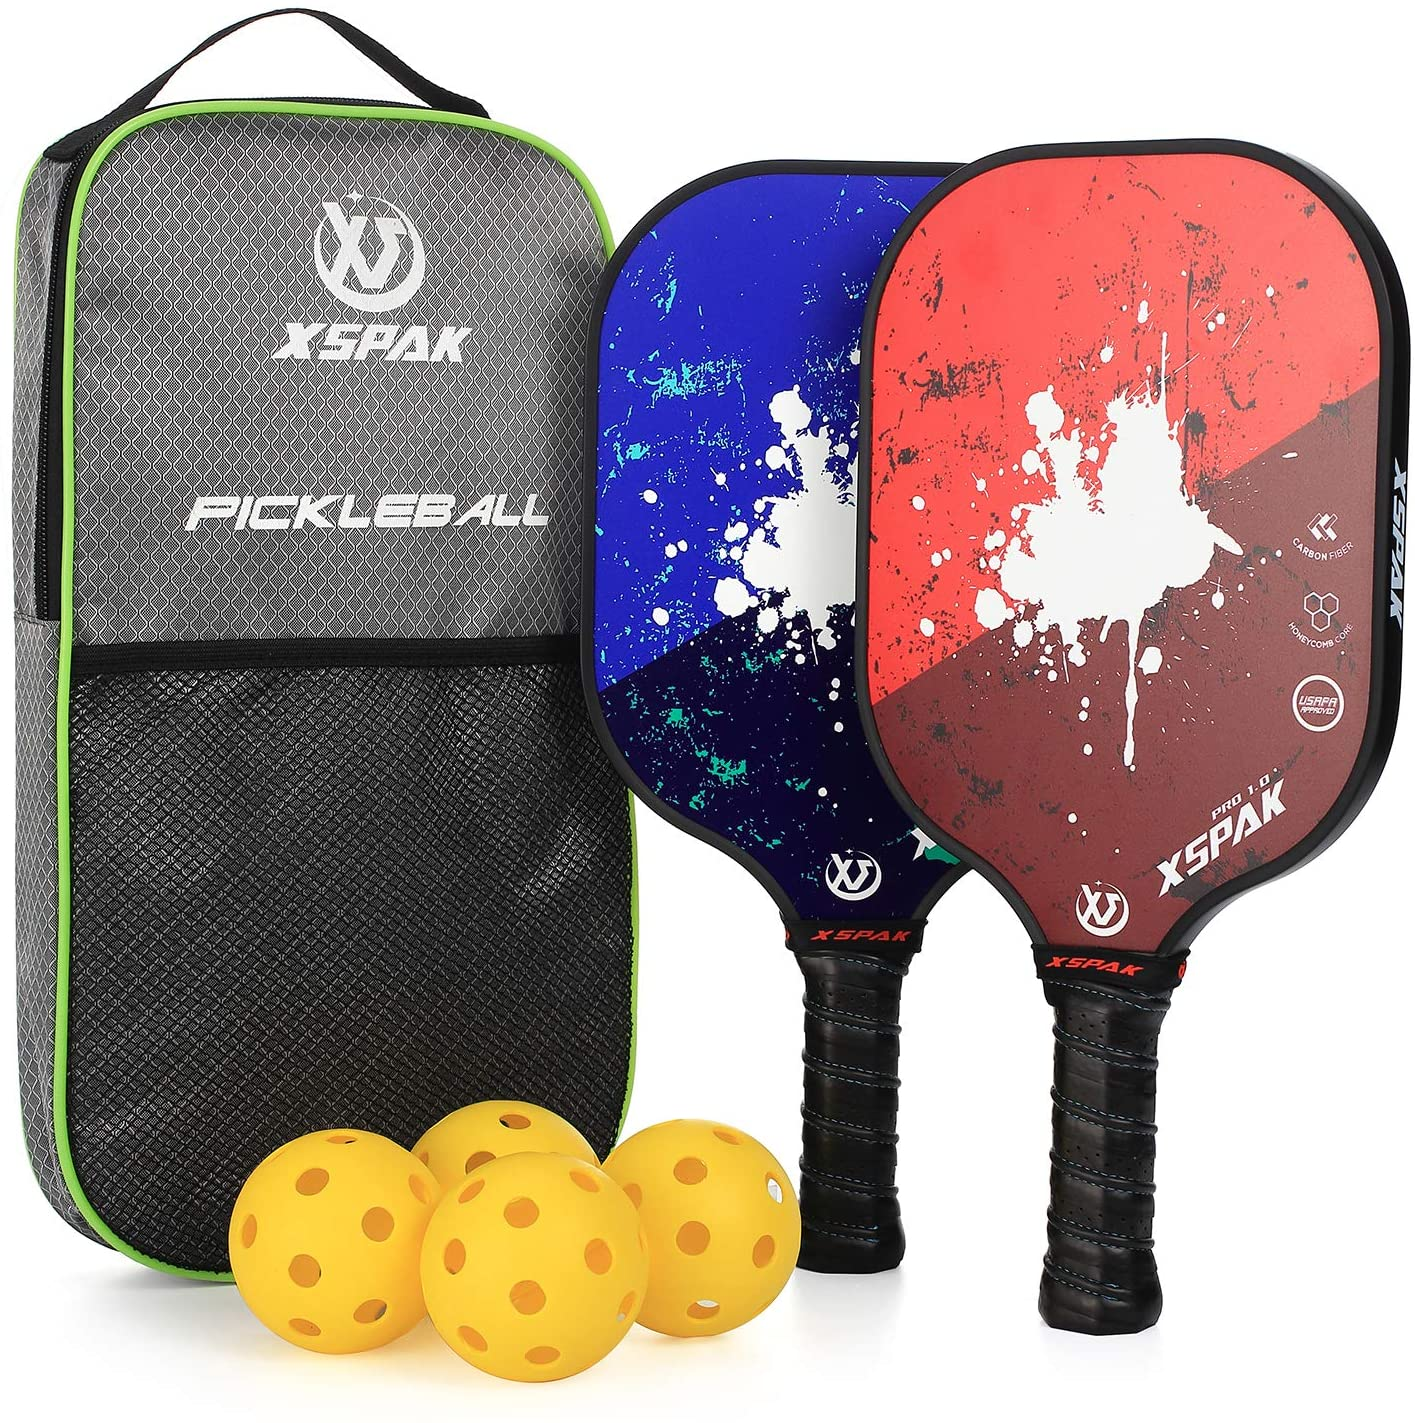 XS XSPAK Pickleball Paddles Set